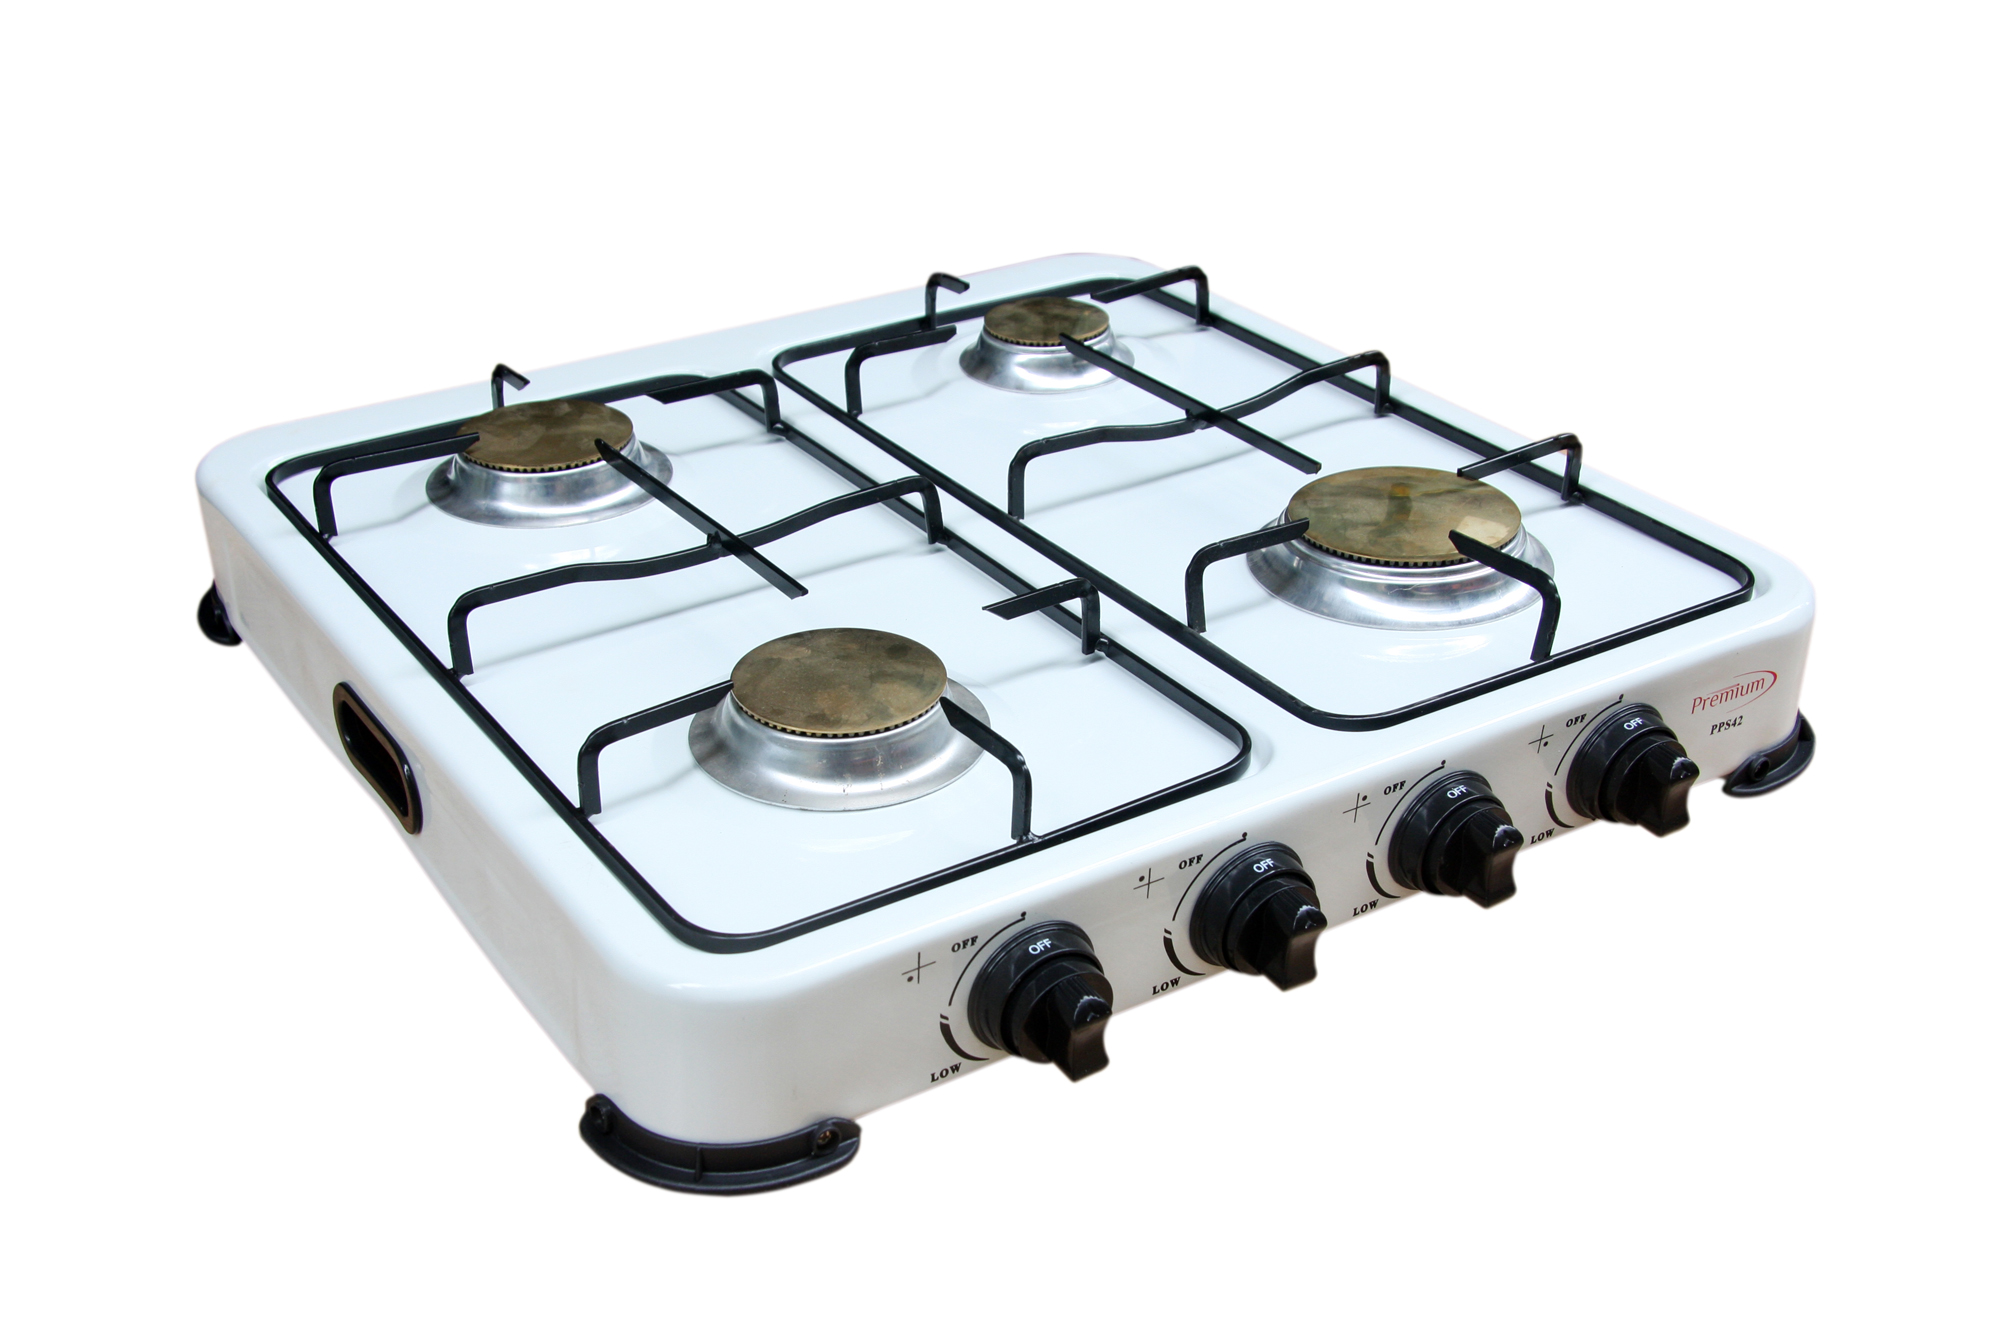 Premium Appliances 4 Burners Portable Gas Stove